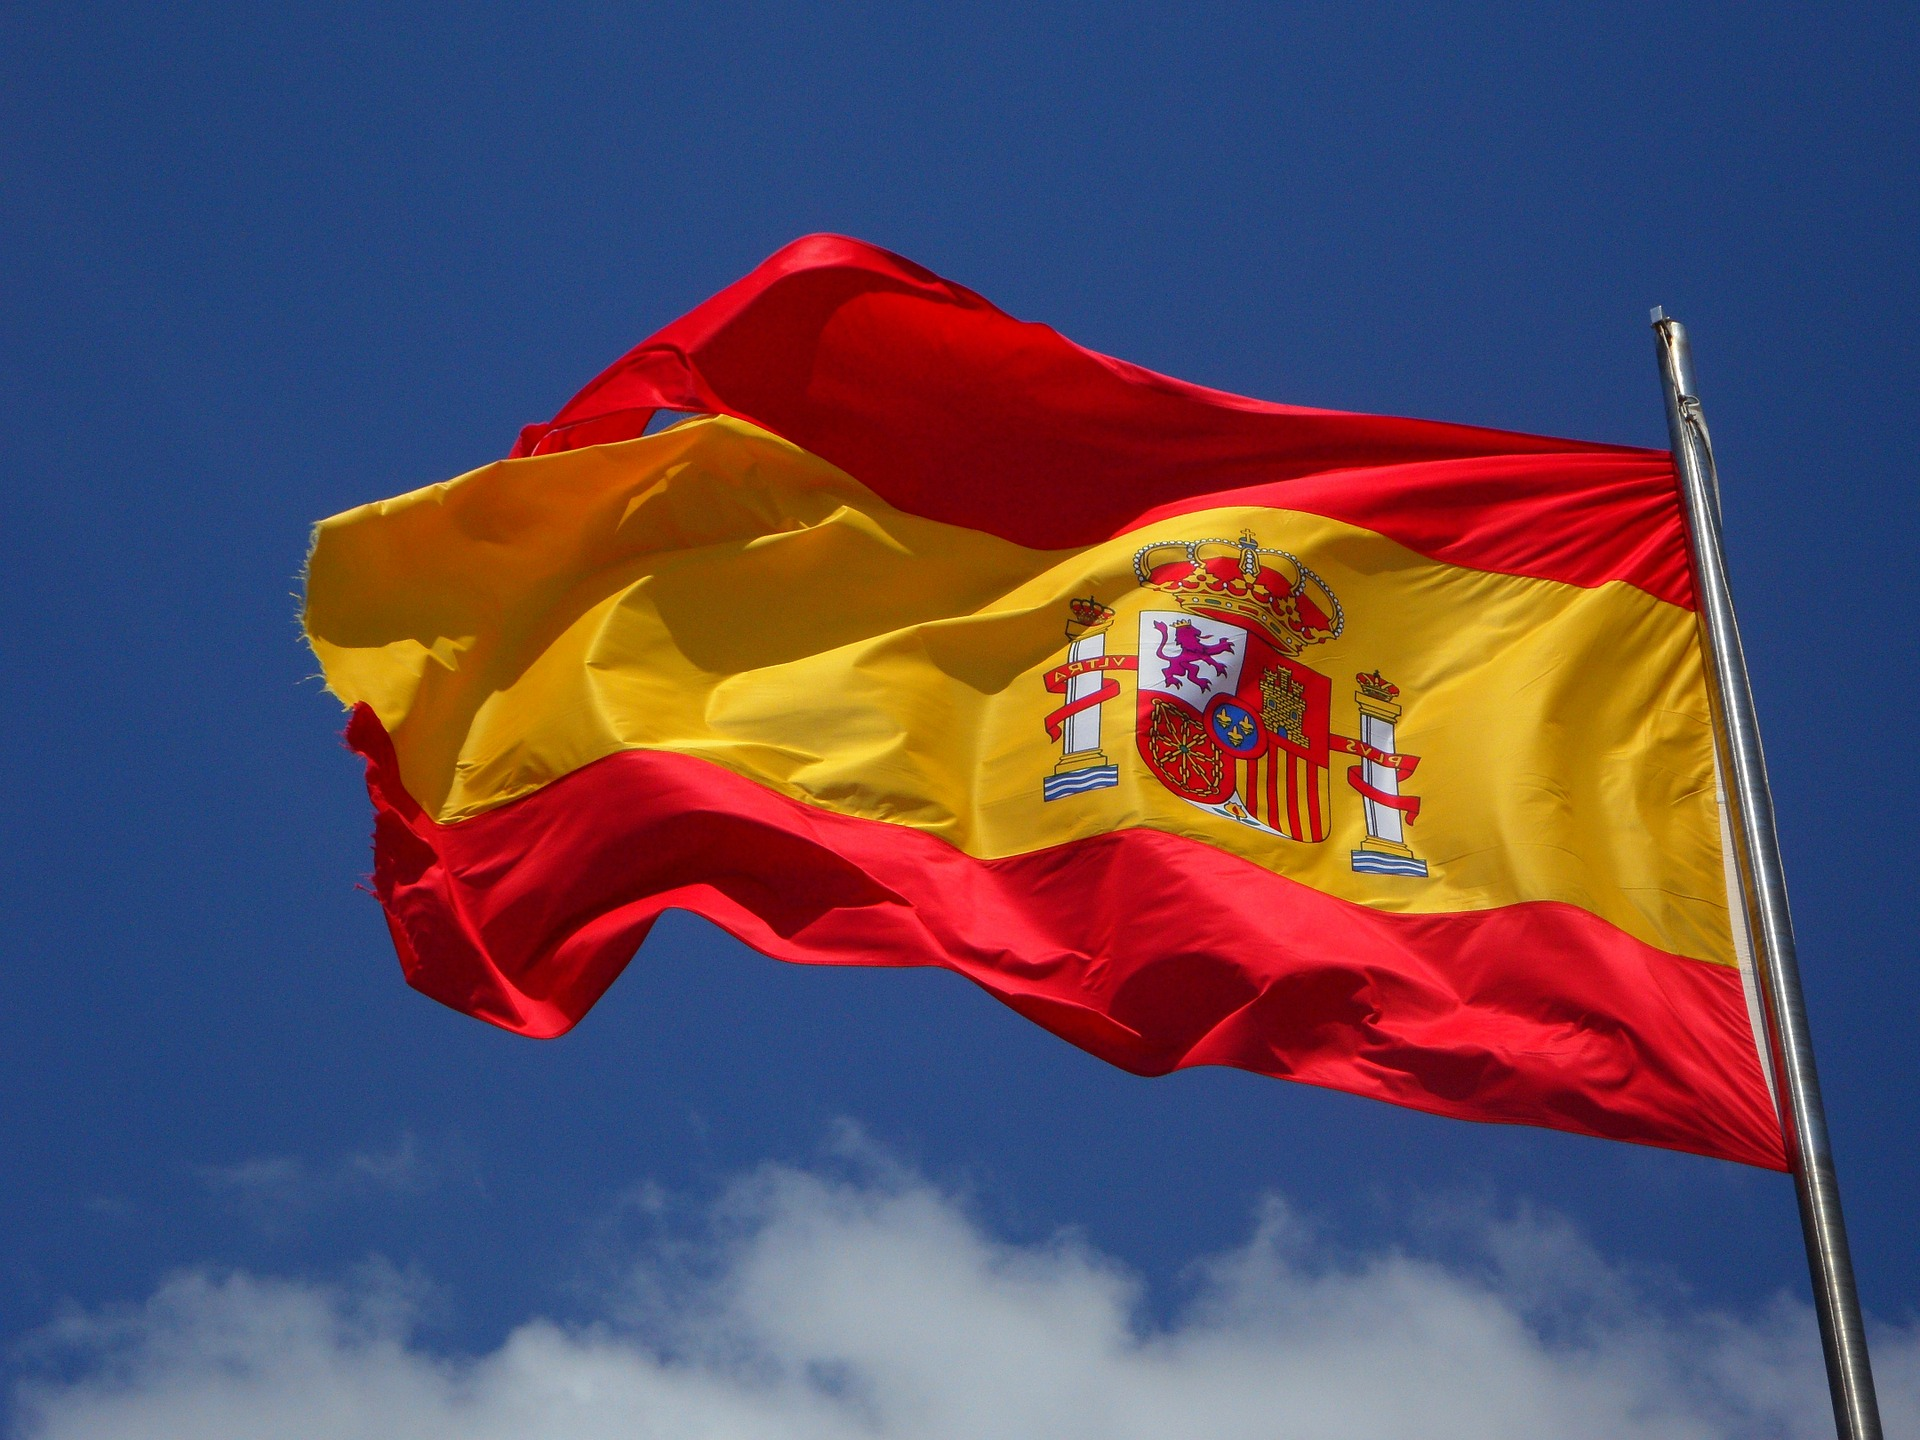 The flag of Spain (Photo credit: Flickr)